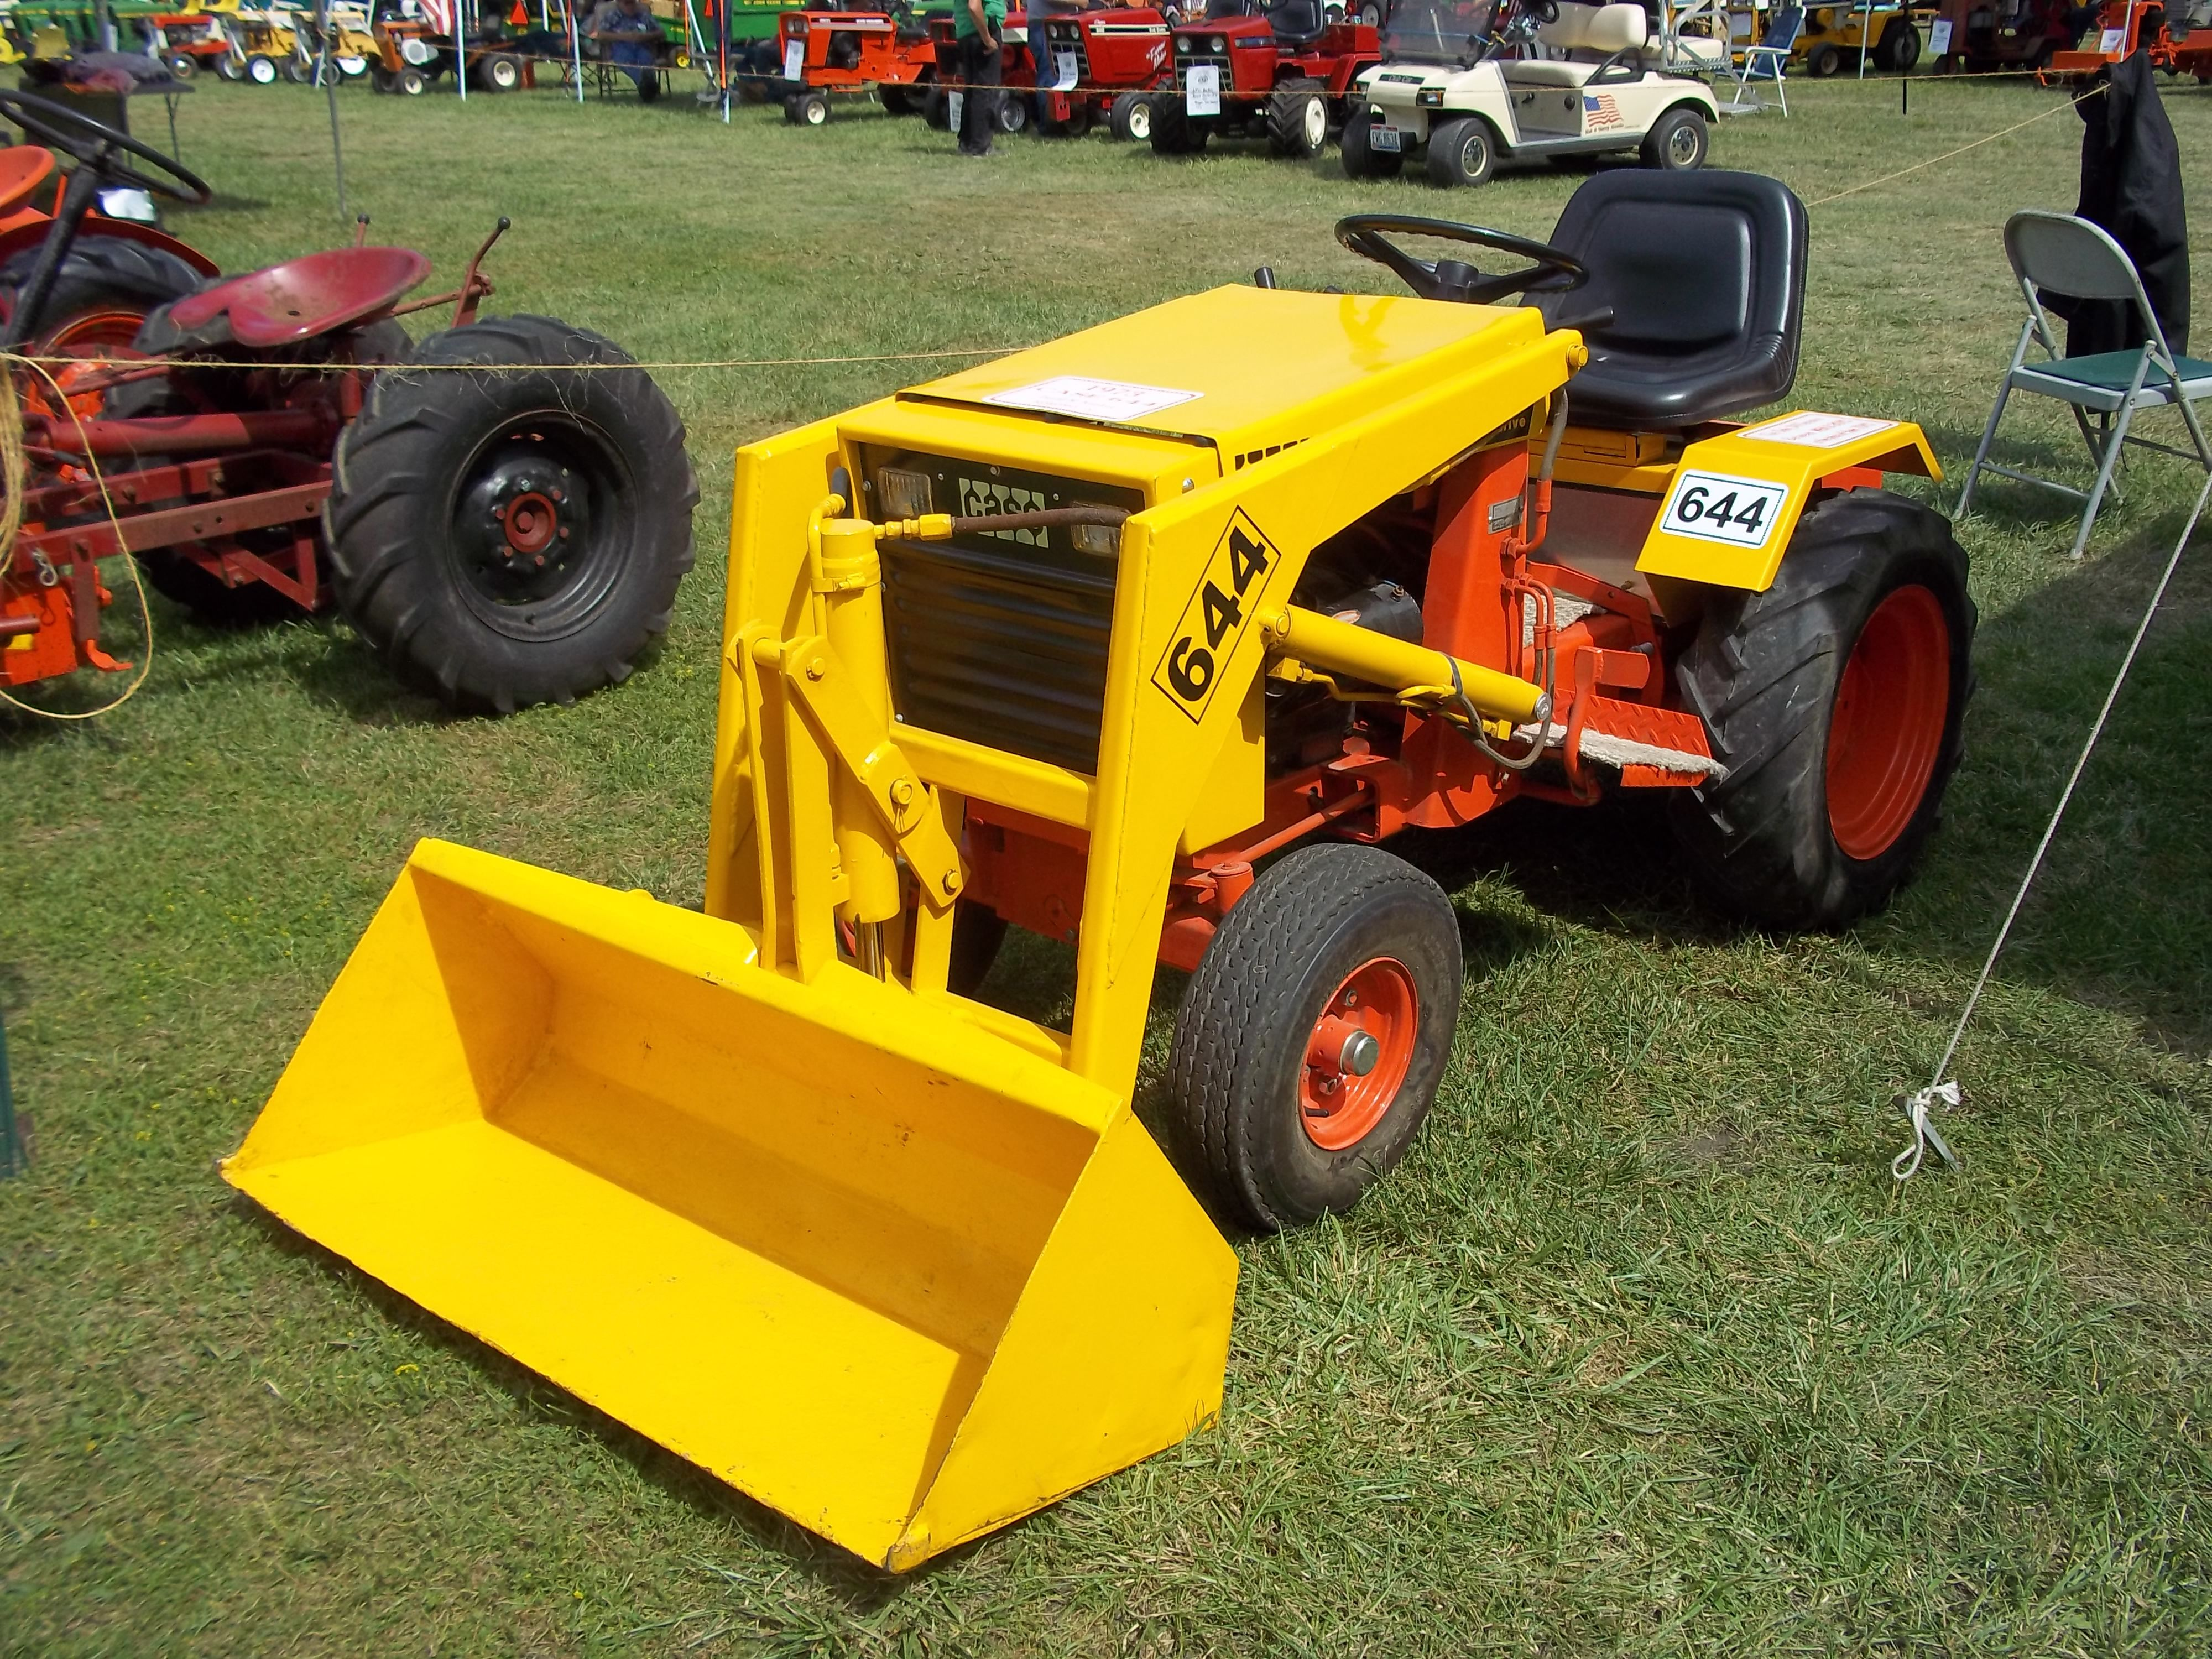 1970s Case 644 Garden Loader Tractor Would Be Nice To Have Ingersoll Tractors Pinterest